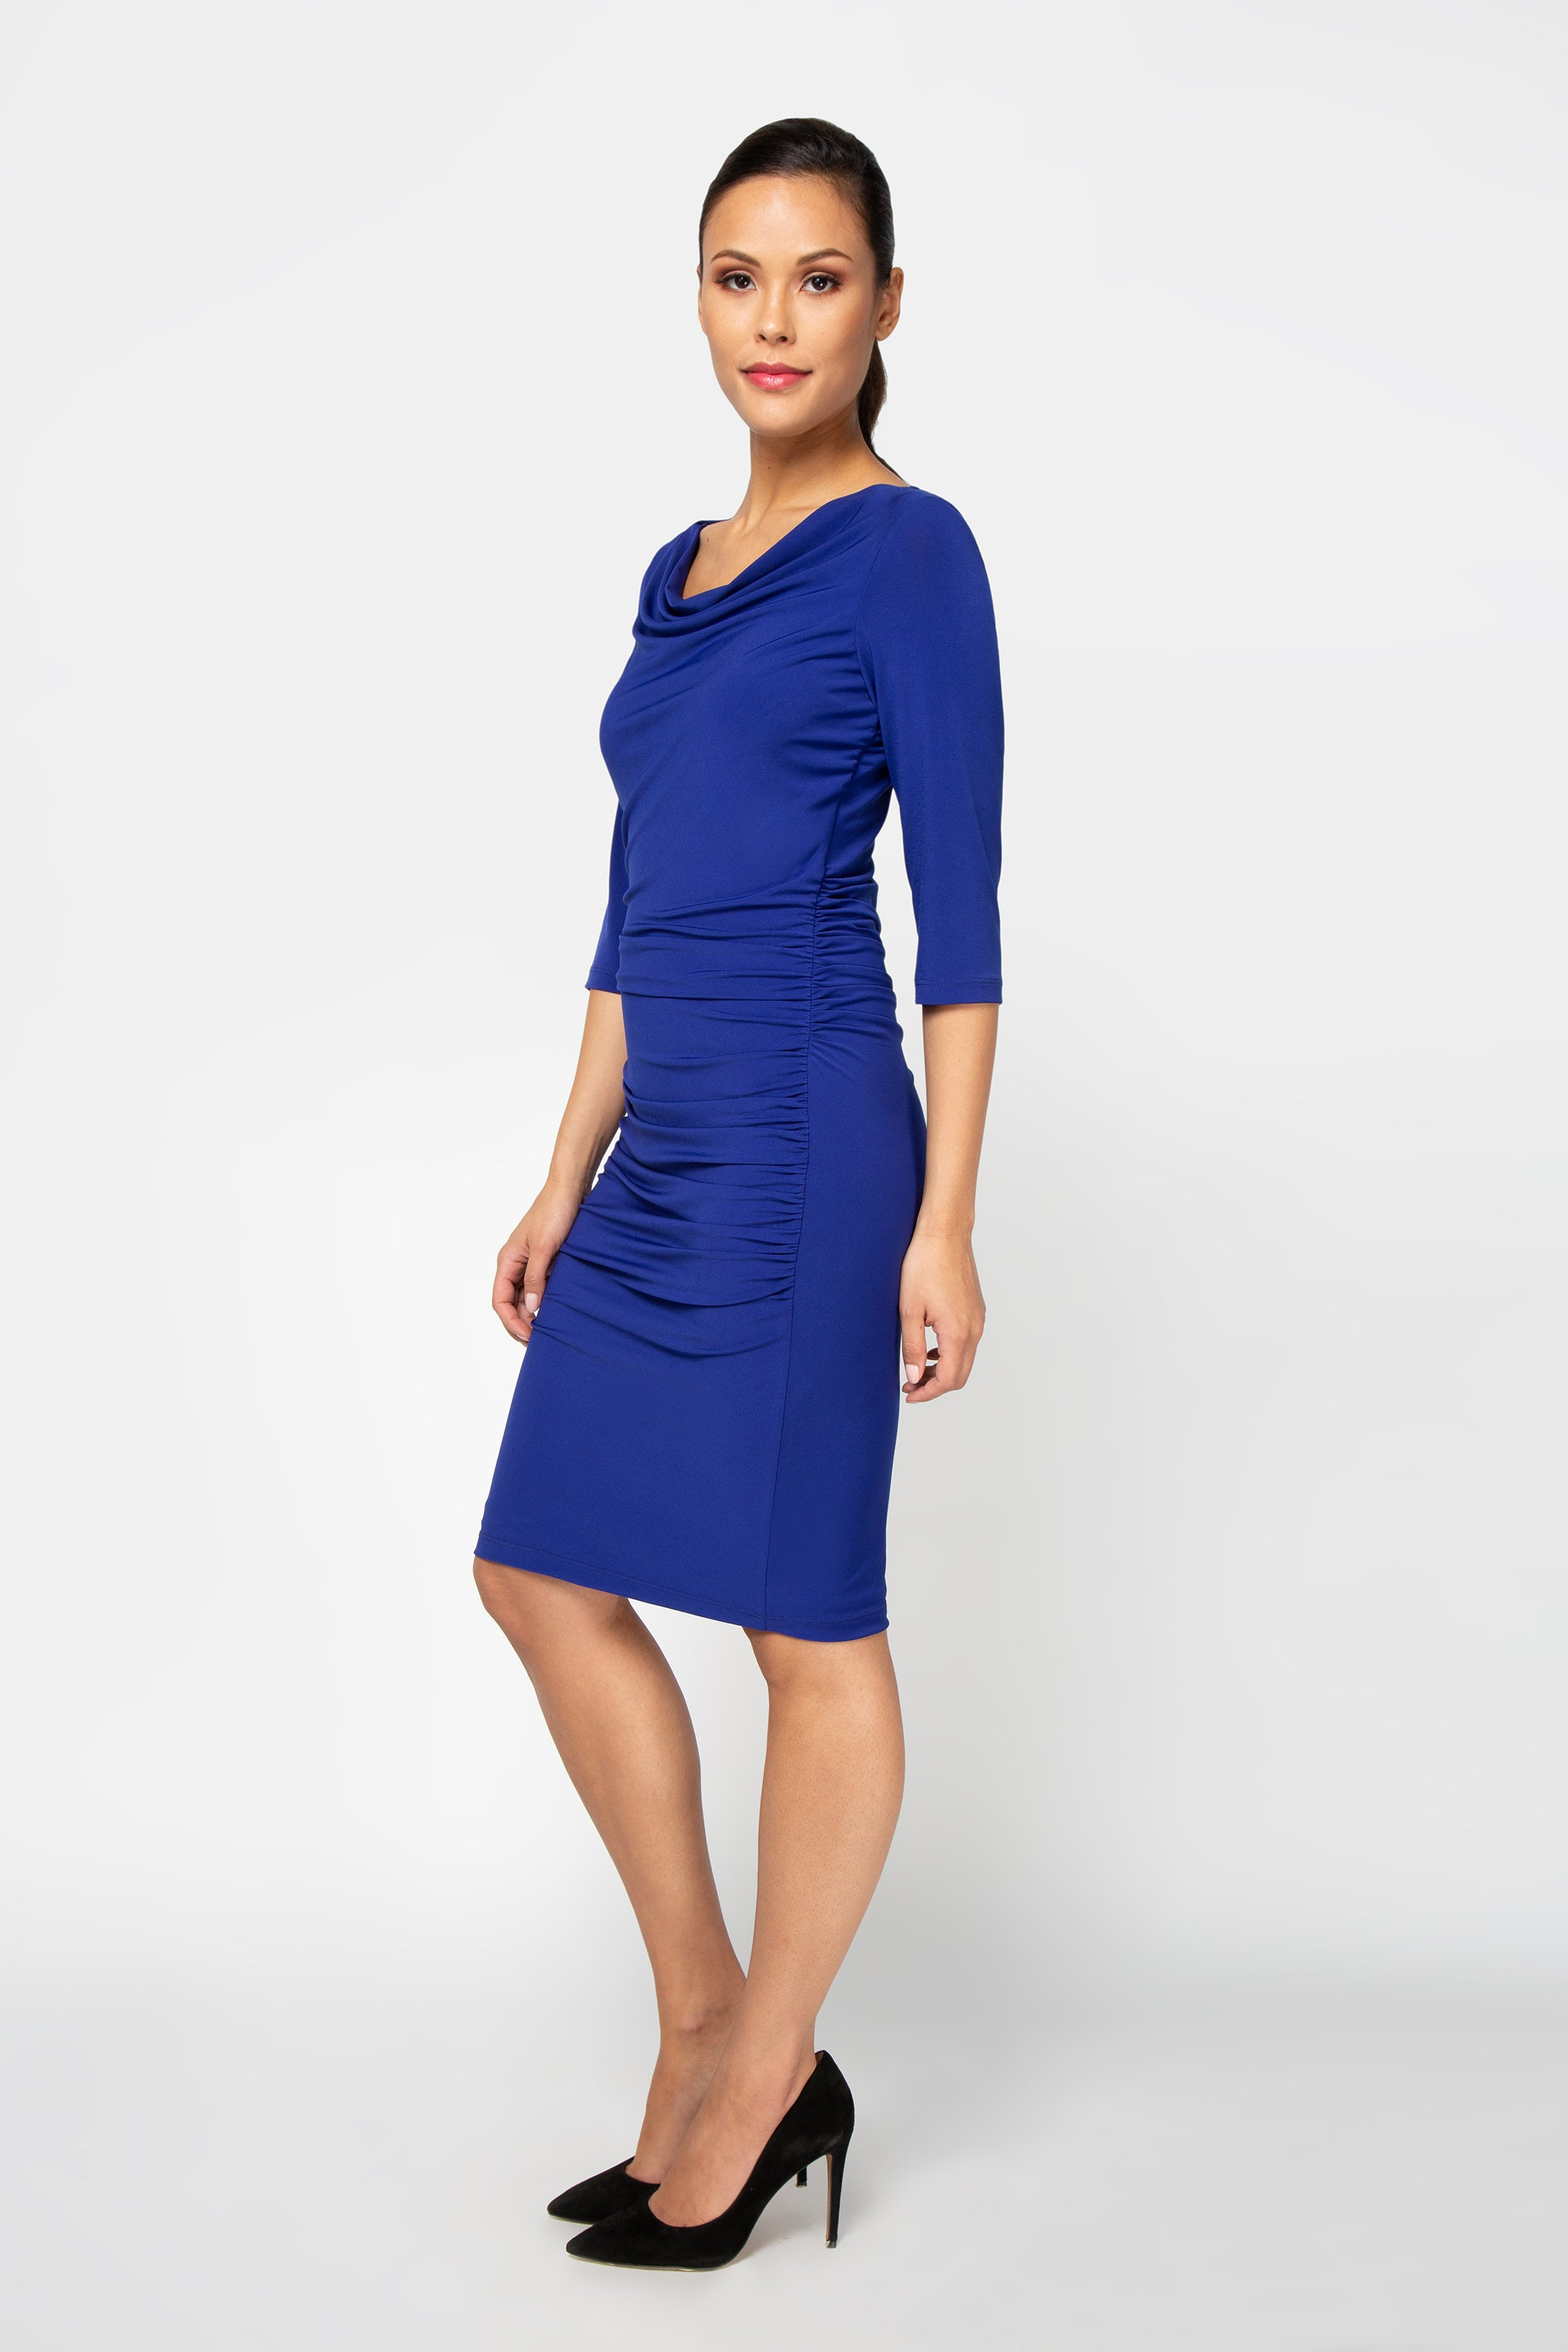 Whitney Dress - Royal